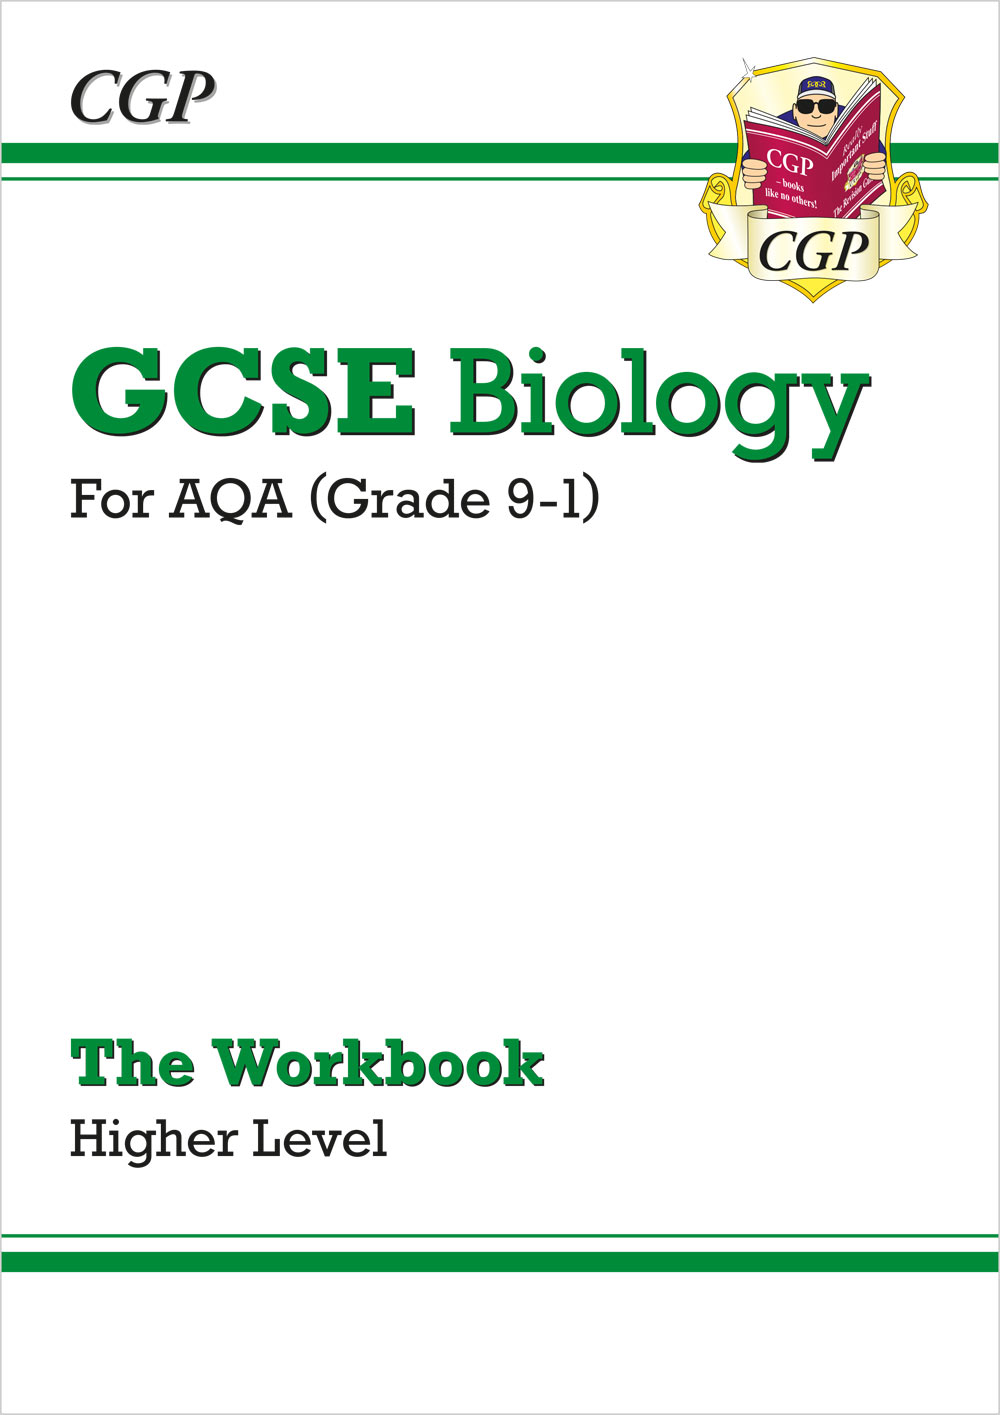 BAHW41 - Grade 9-1 GCSE Biology: AQA Workbook - Higher